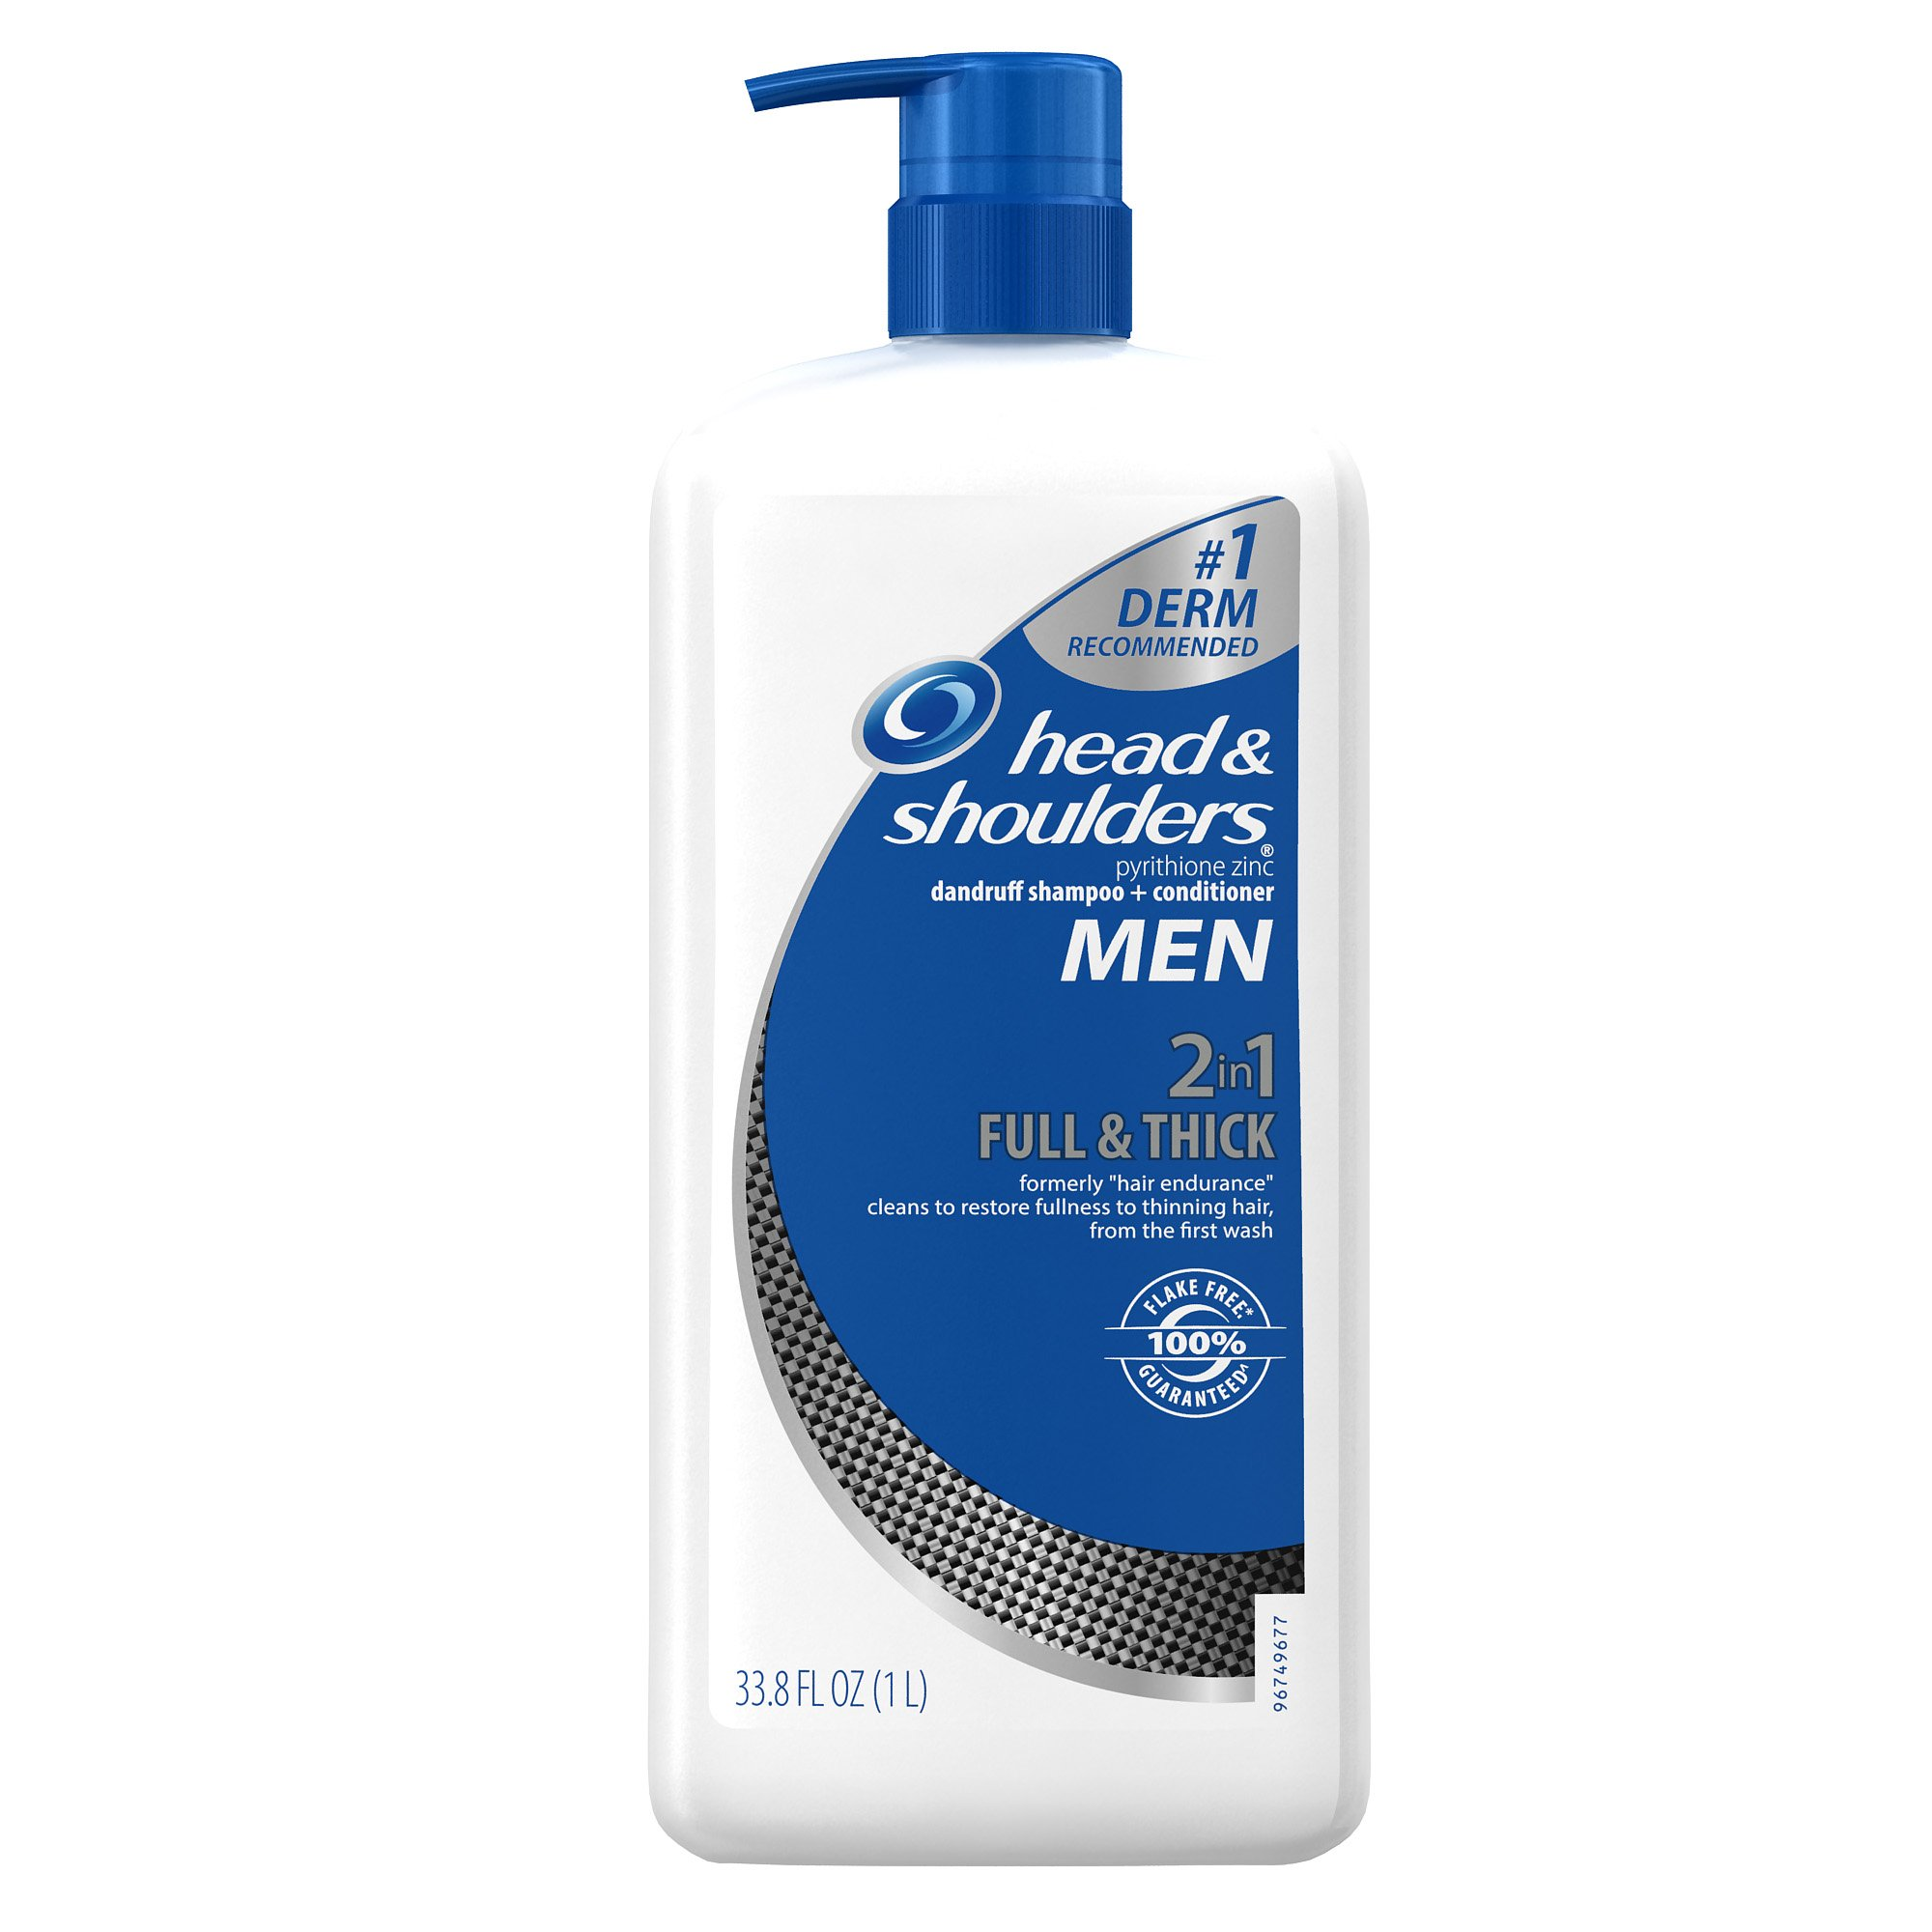 Head and Shoulders Men Full and Thick 2-In-1 Dandruff Shampoo and Conditioner - 32.1 Fluid Ounces